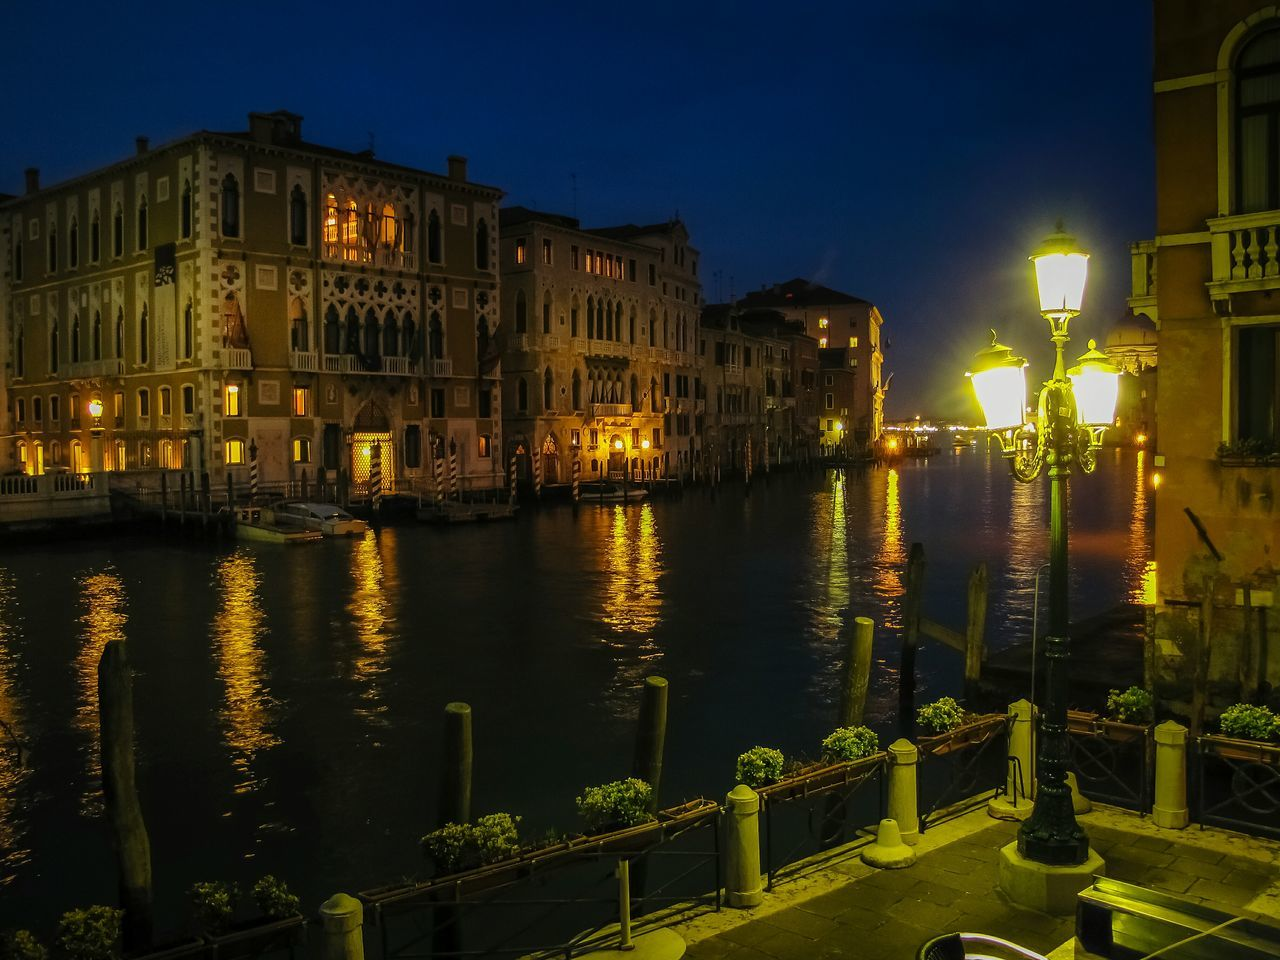 building exterior, architecture, night, illuminated, built structure, outdoors, water, no people, sky, city